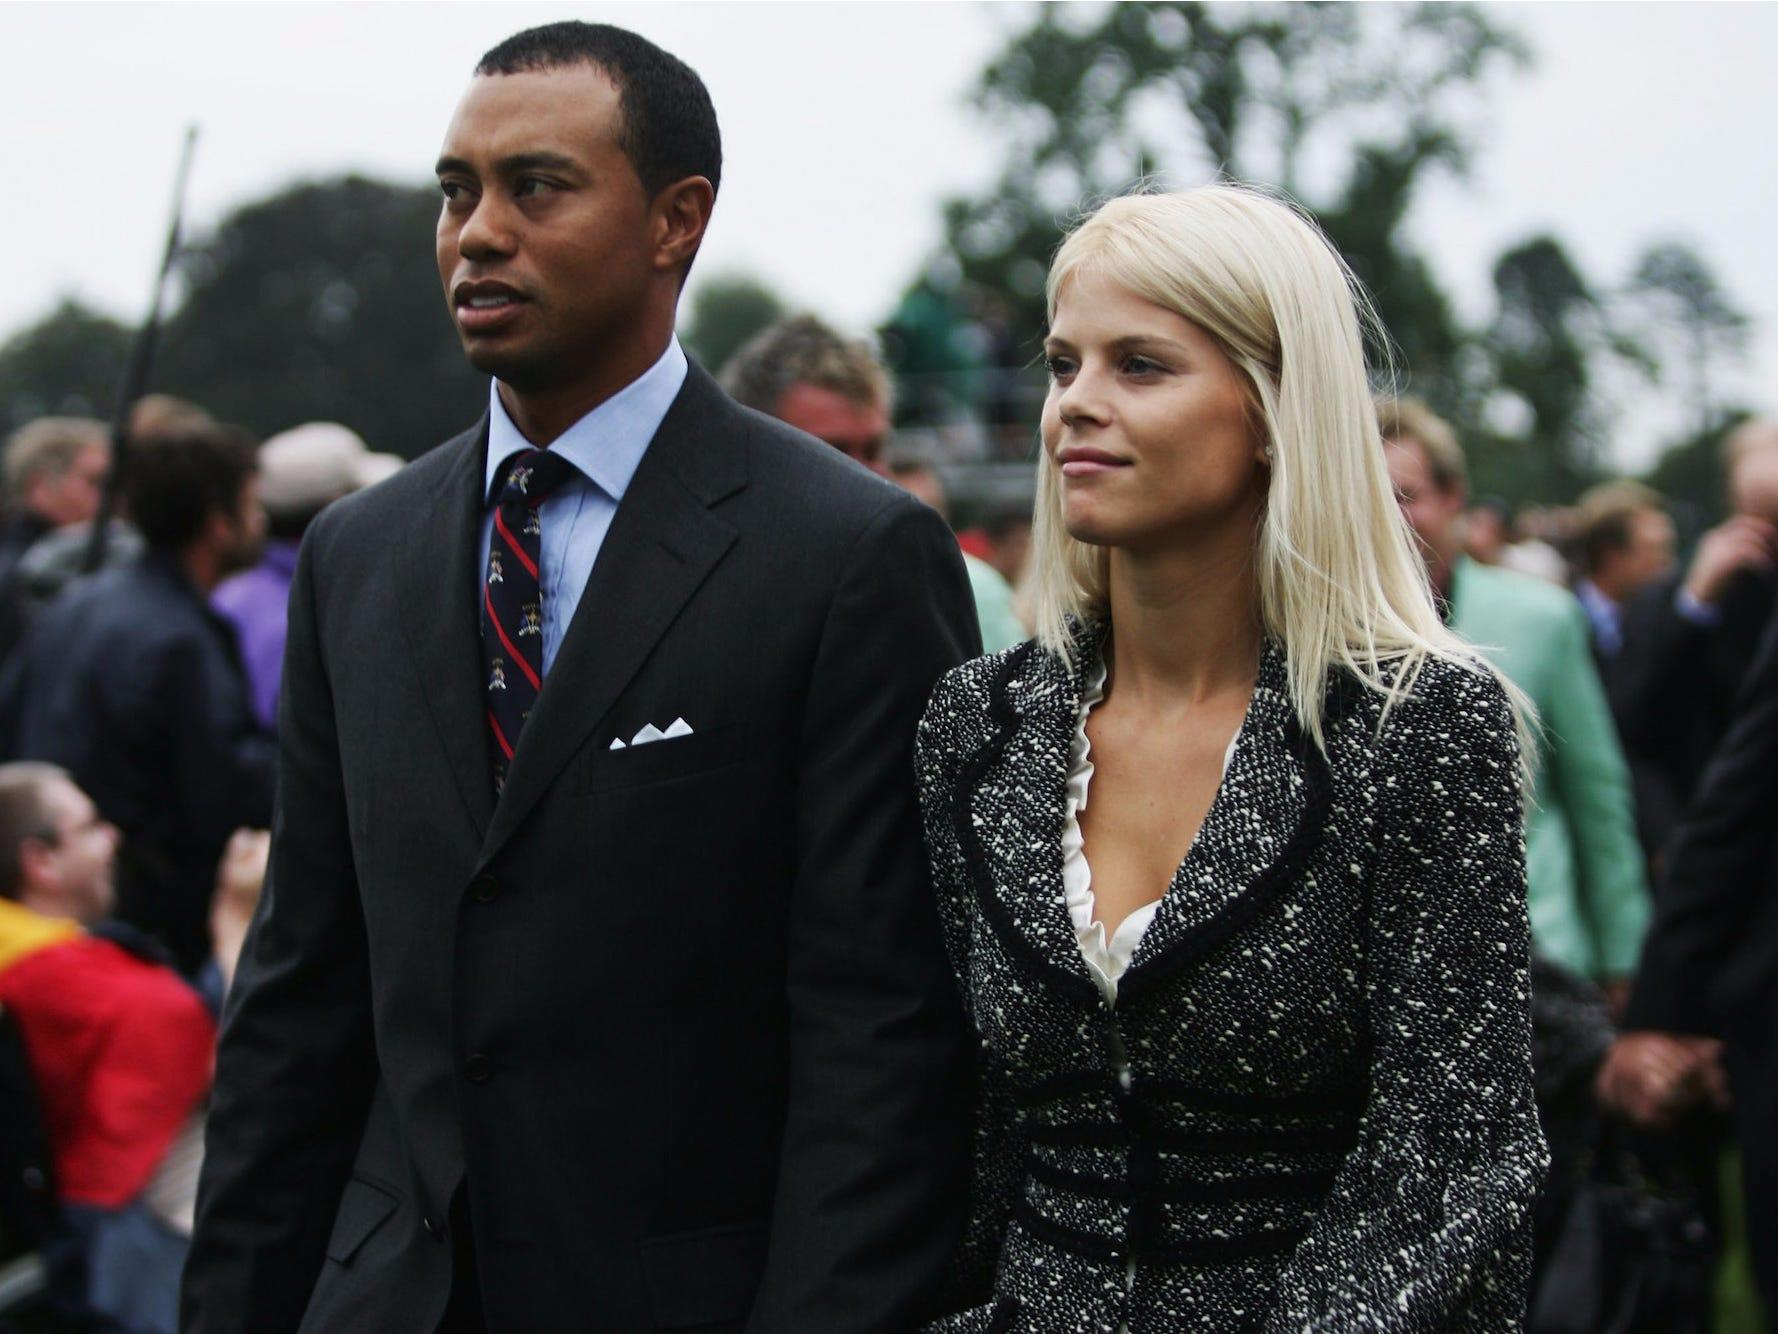 Director of HBO's Tiger Woods documentary reveals how they got his mistress in the movie